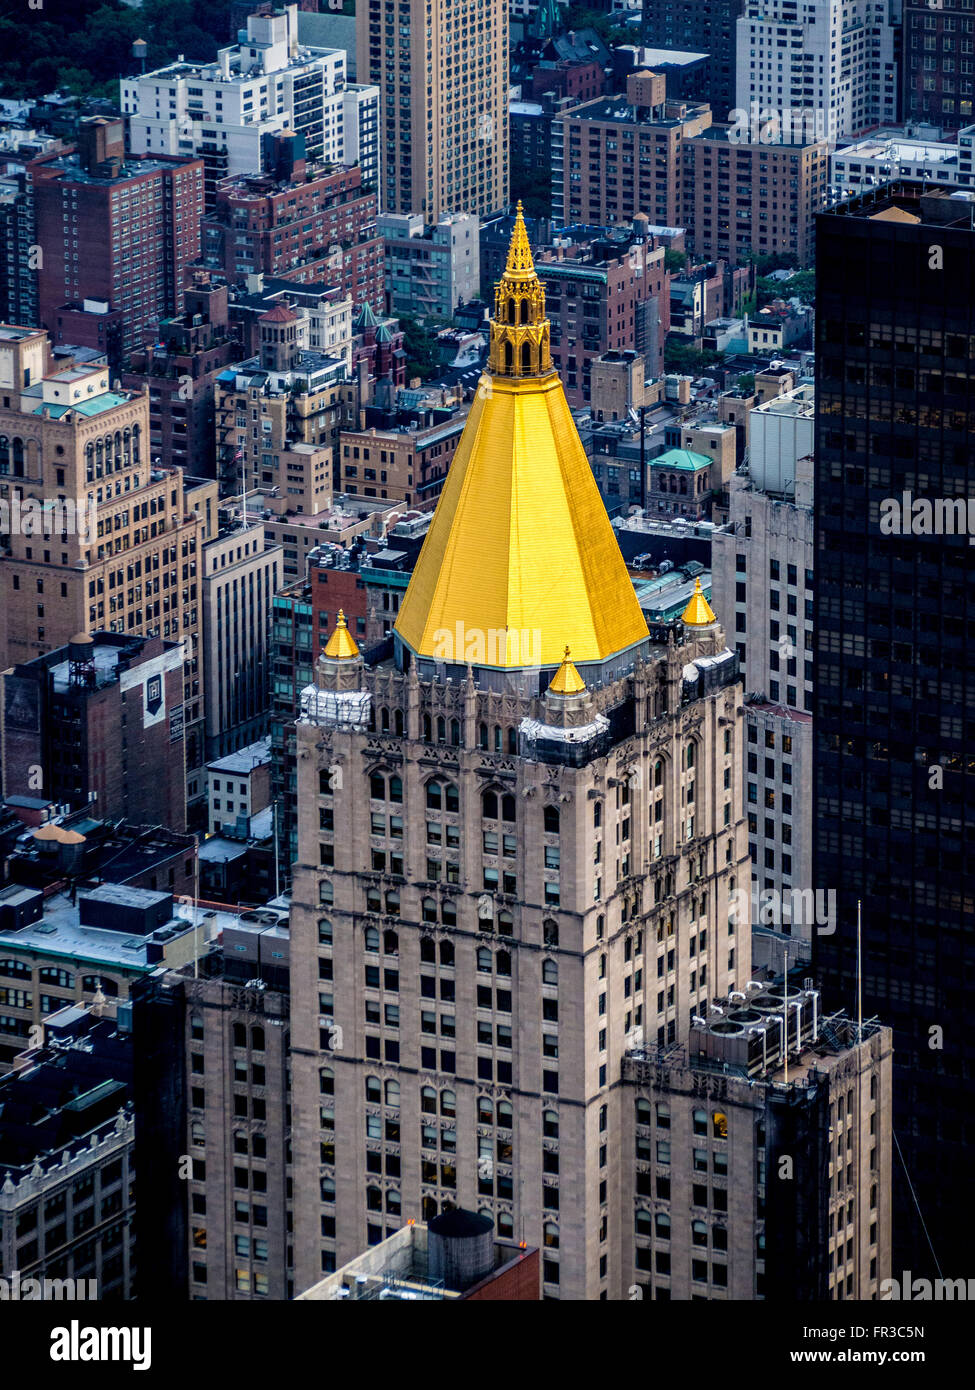 Golden Wallpaper Hd For Mobile View From The Empire State Building Showing New York Life